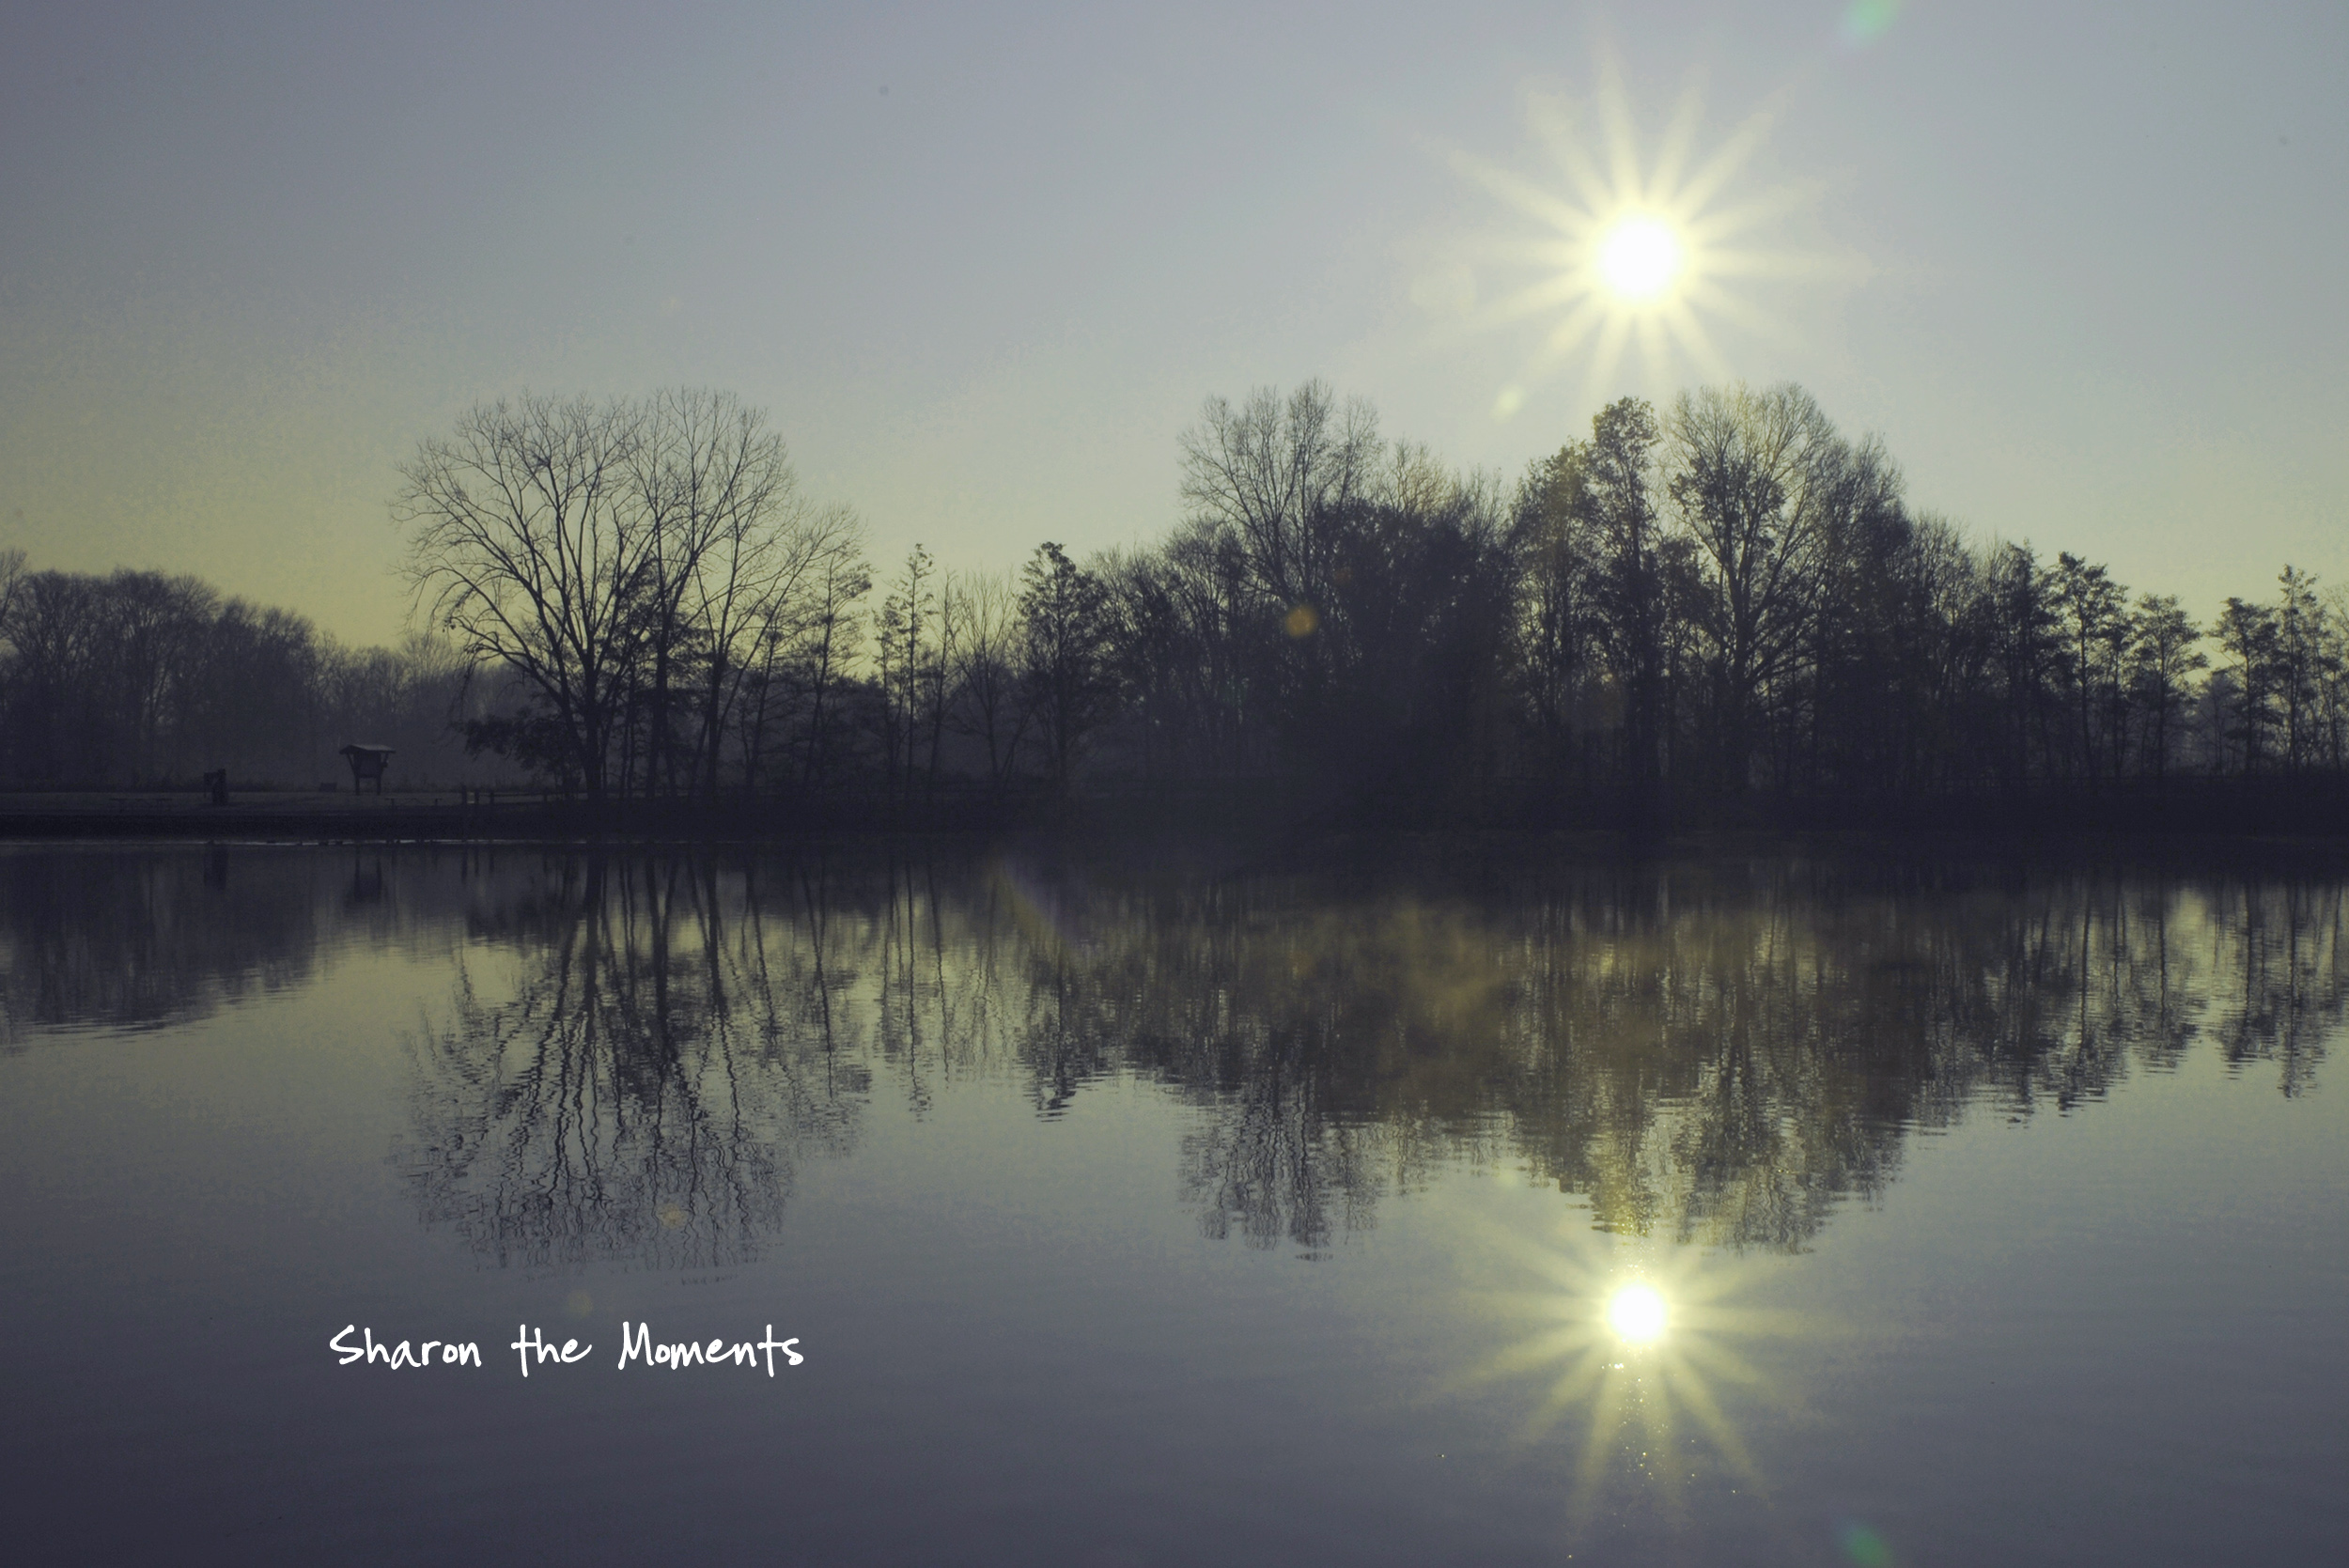 Favorite Photo Friday at Sharon Woods Schrock Lake|Sharon the Moments blog